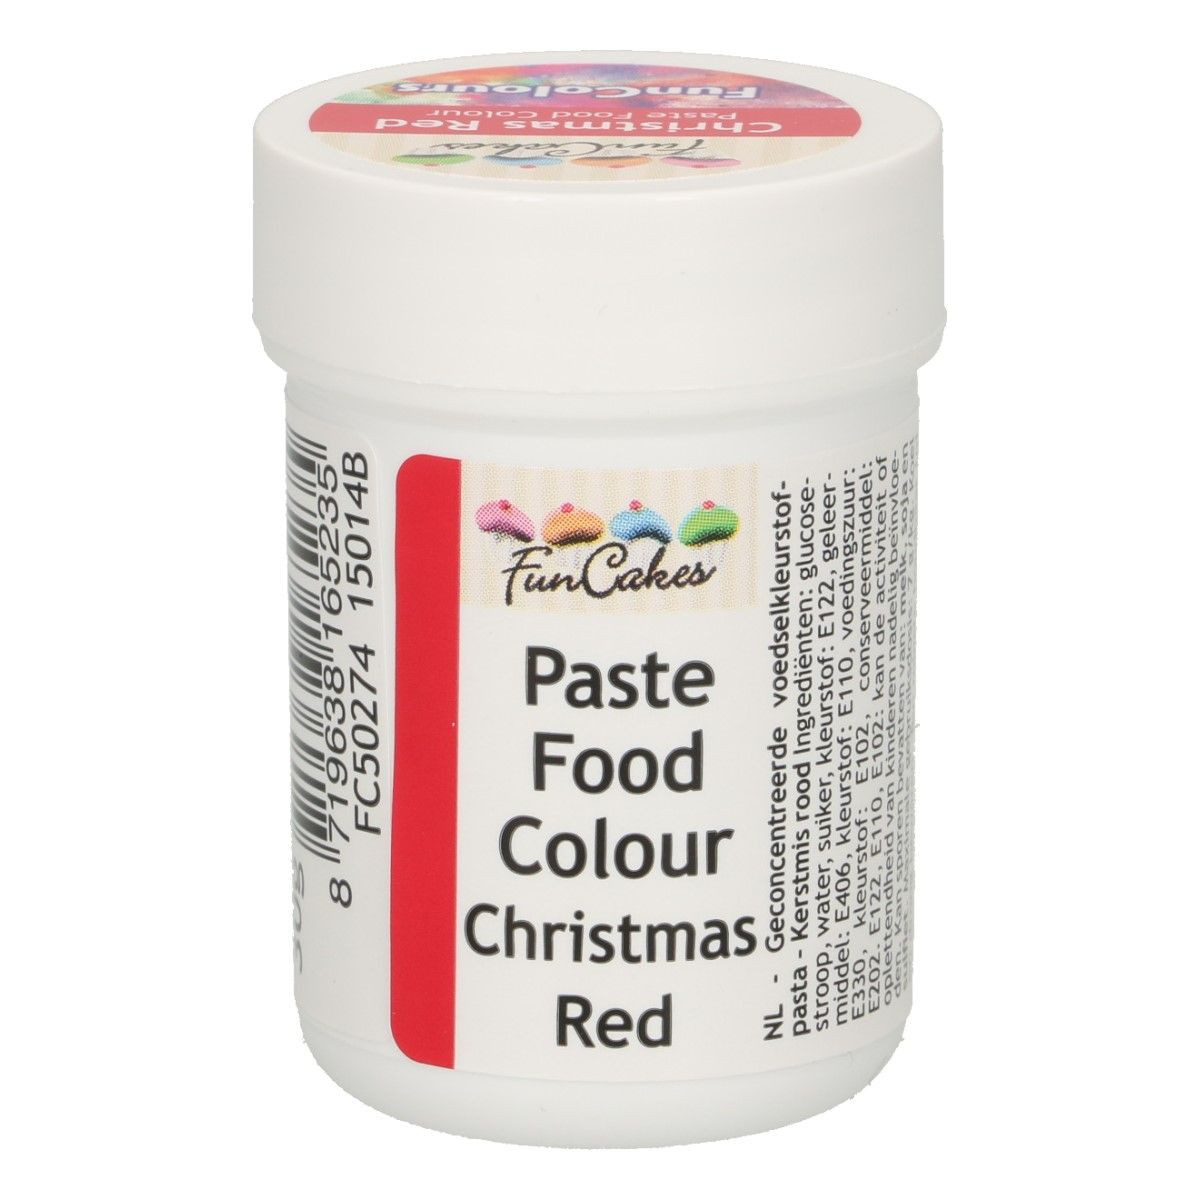 Funcakes FunColours Paste Food Colour - Christmas Red 30 g